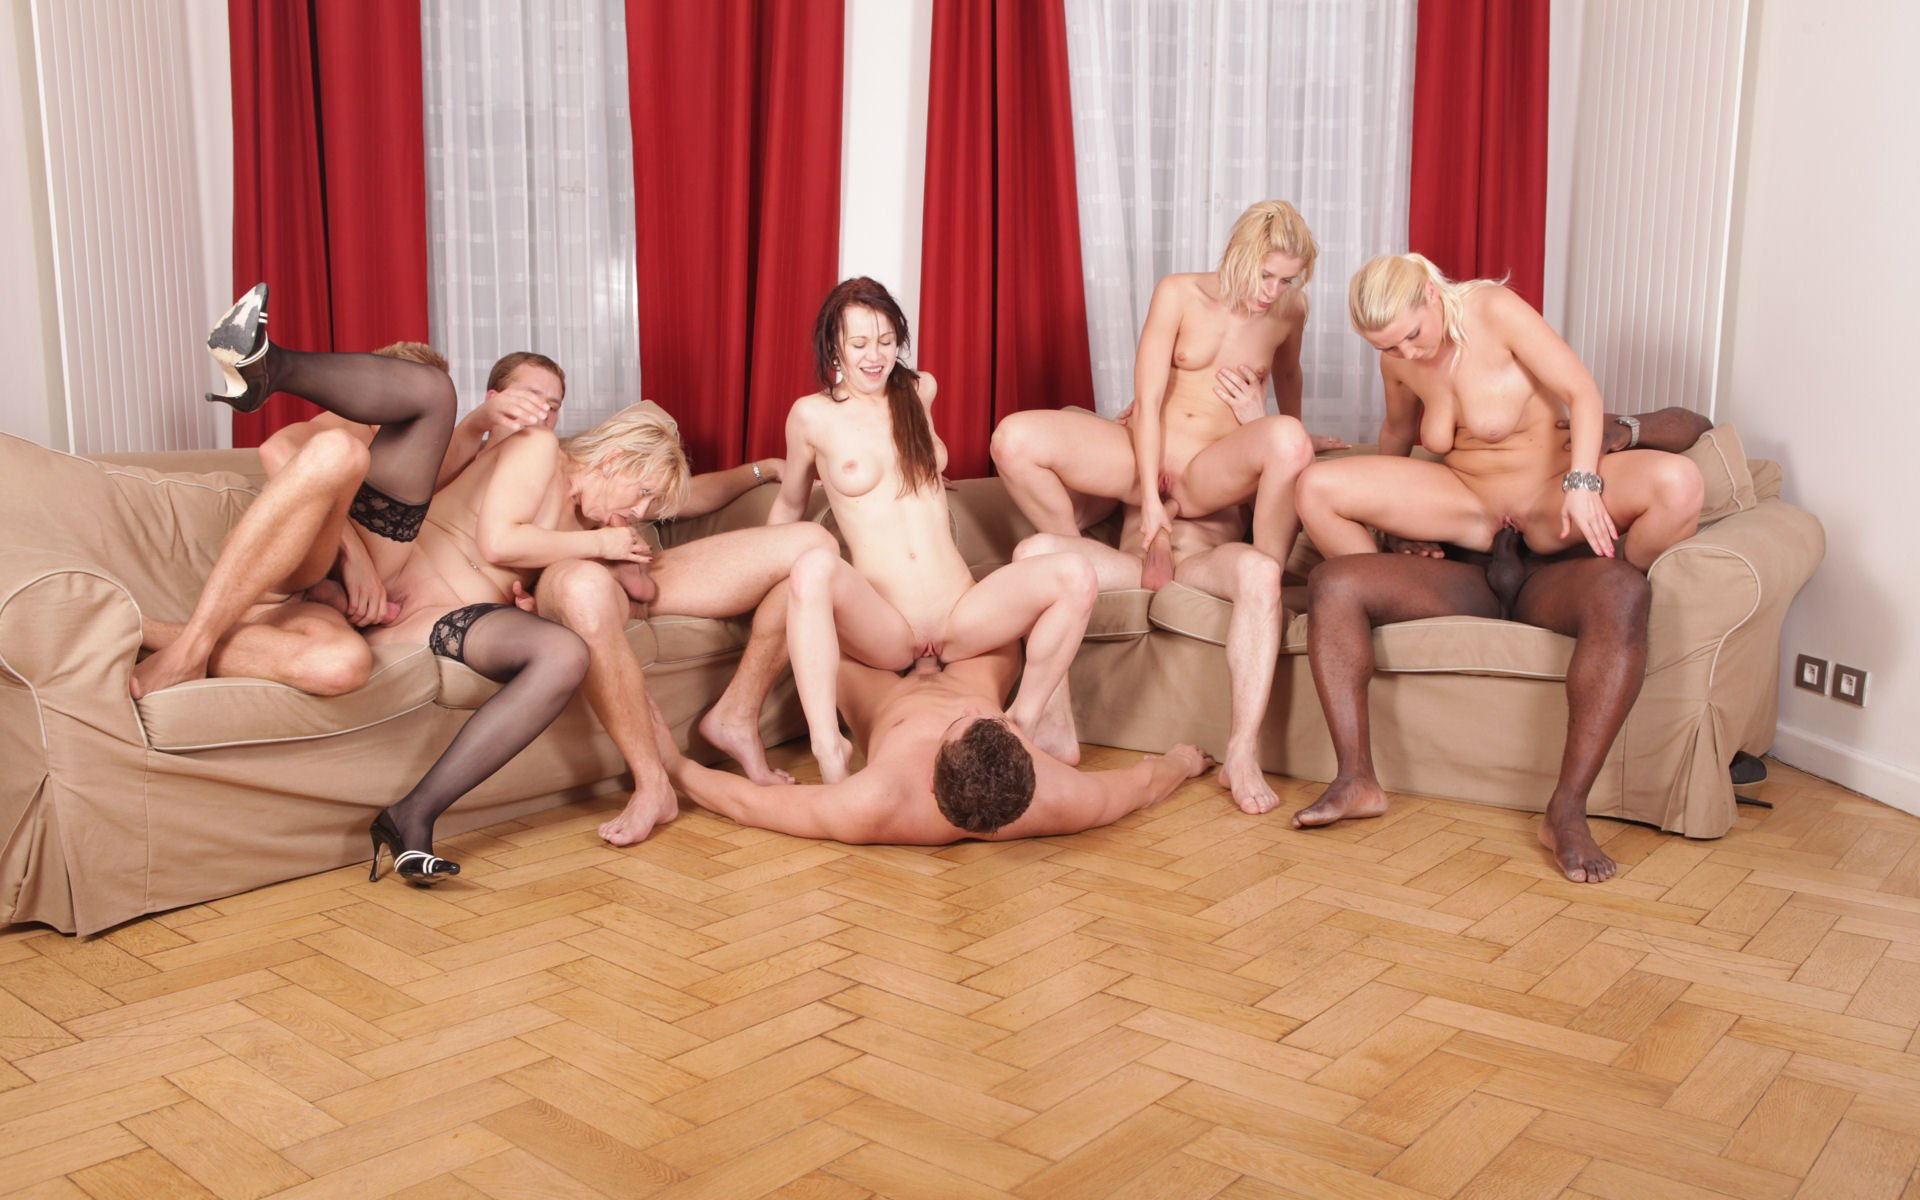 group xxx video download